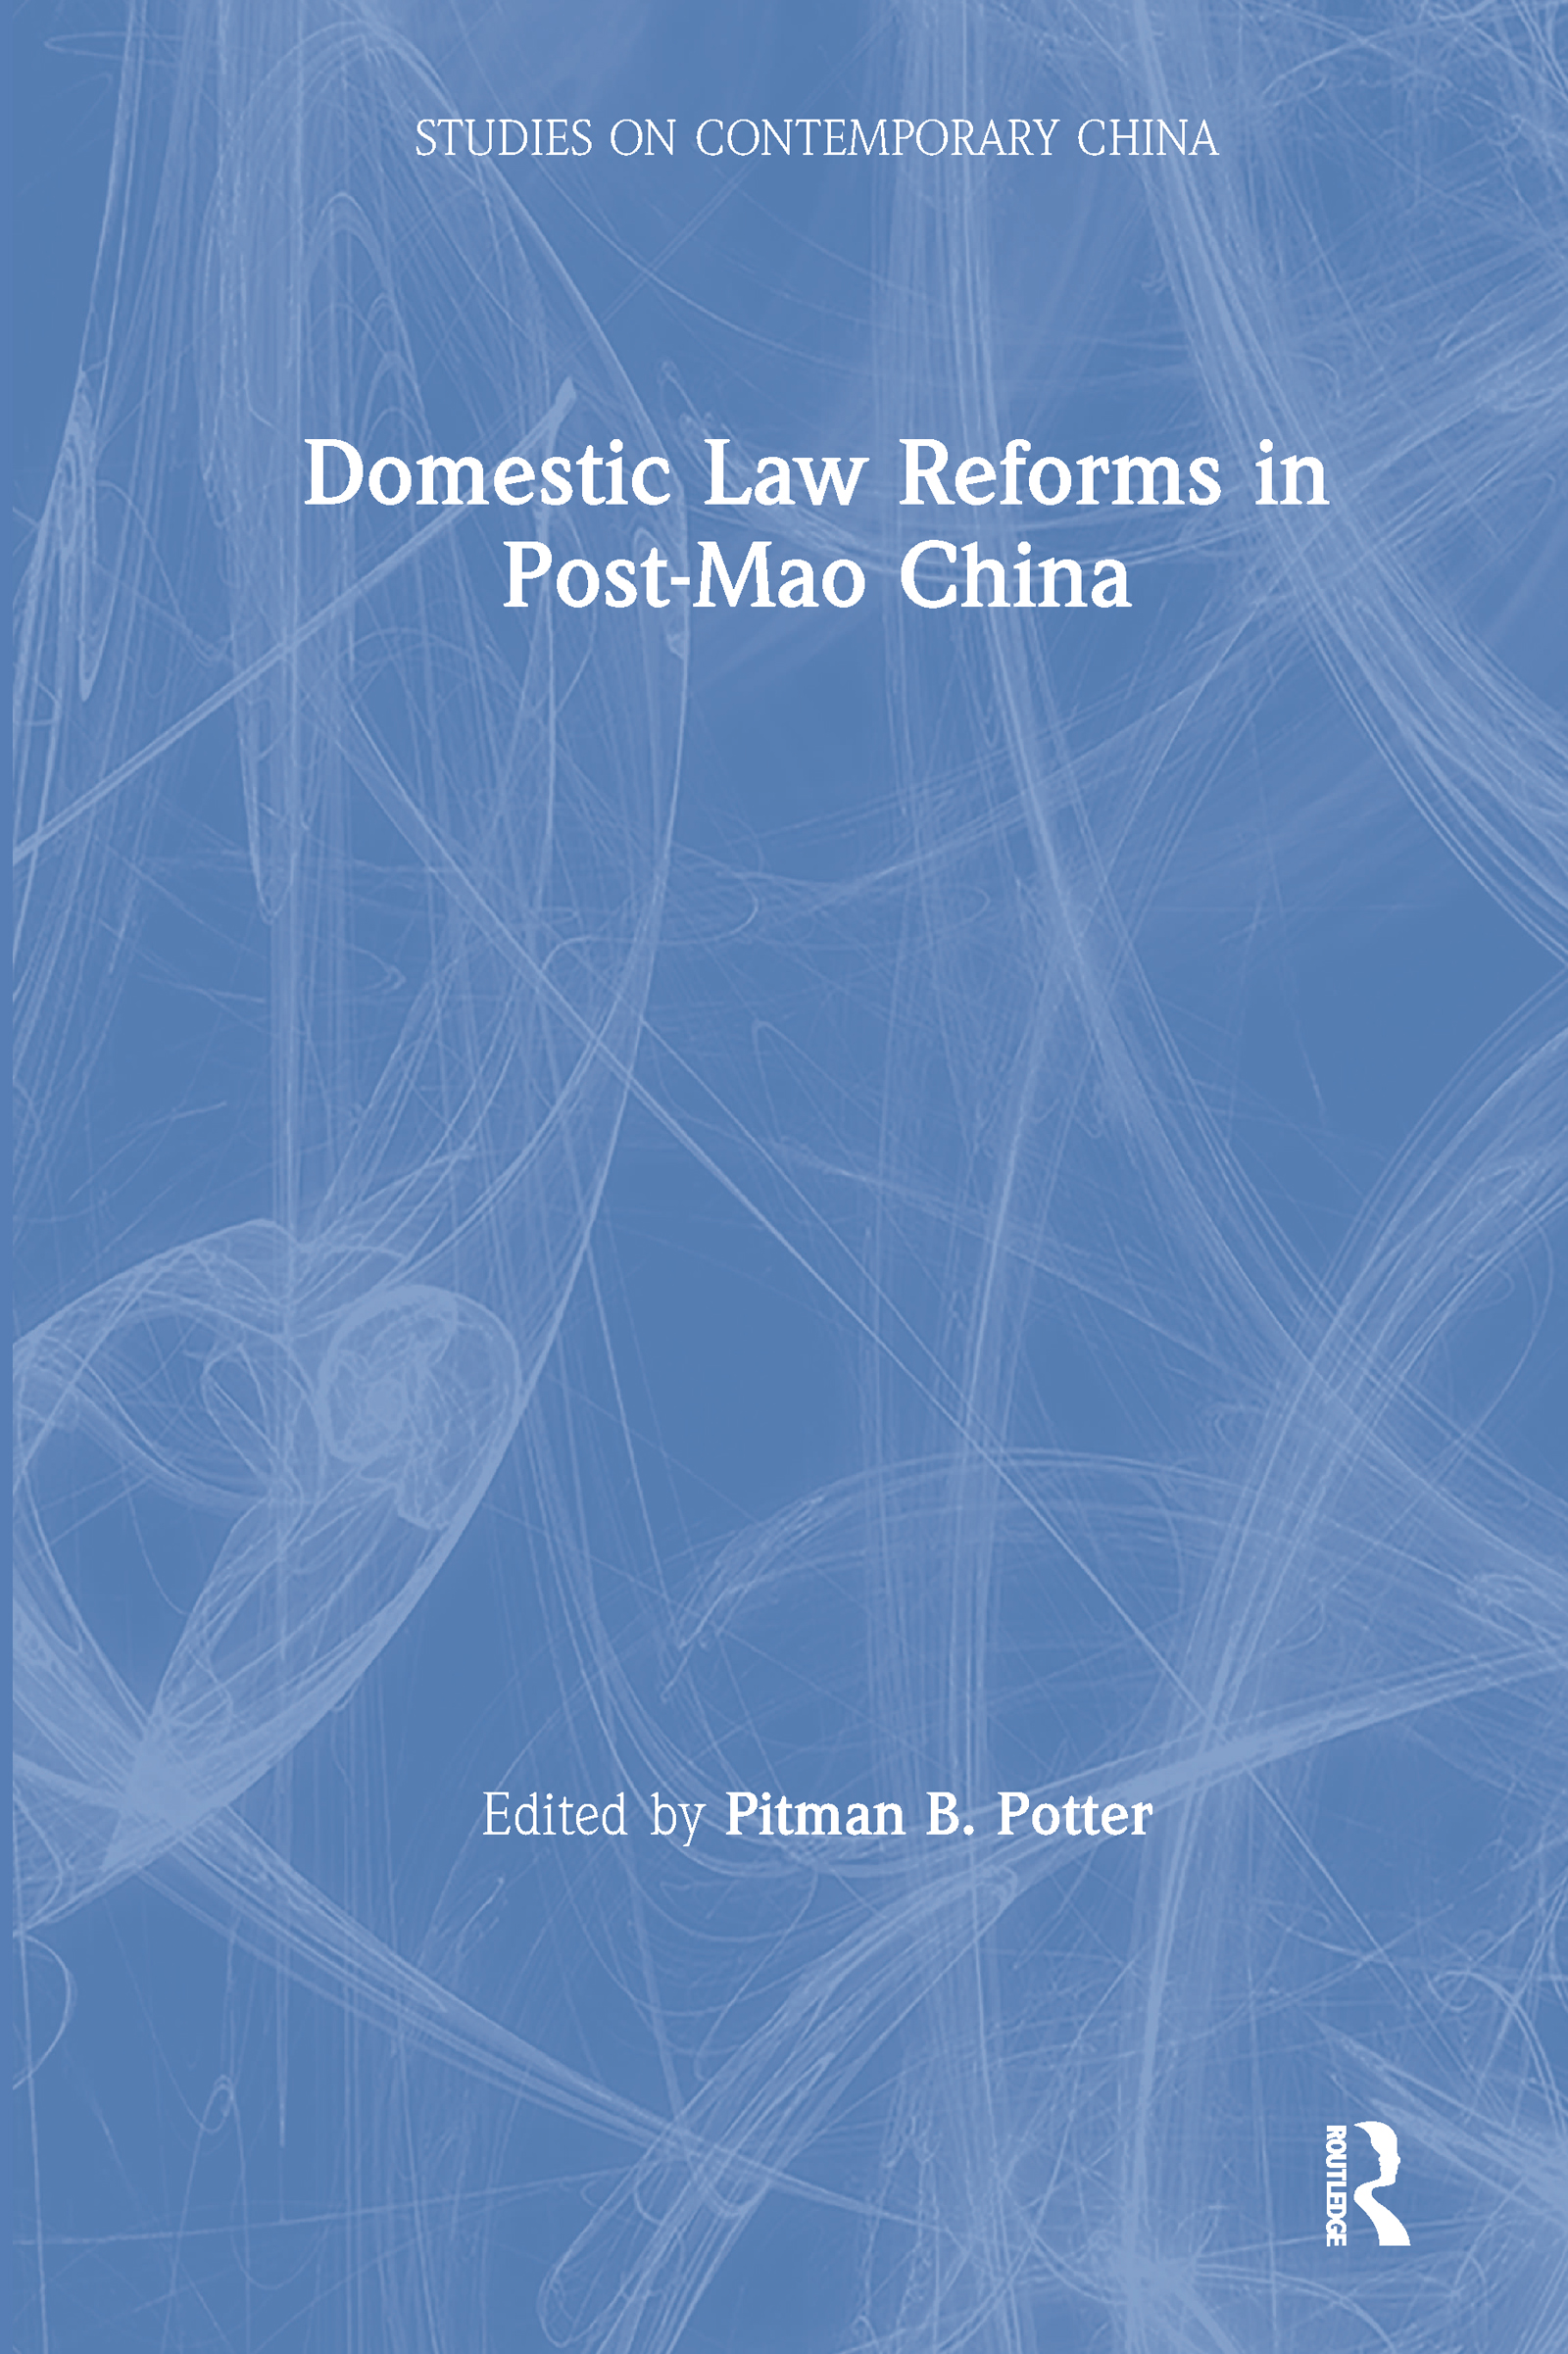 Domestic Law Reforms in Post-Mao China